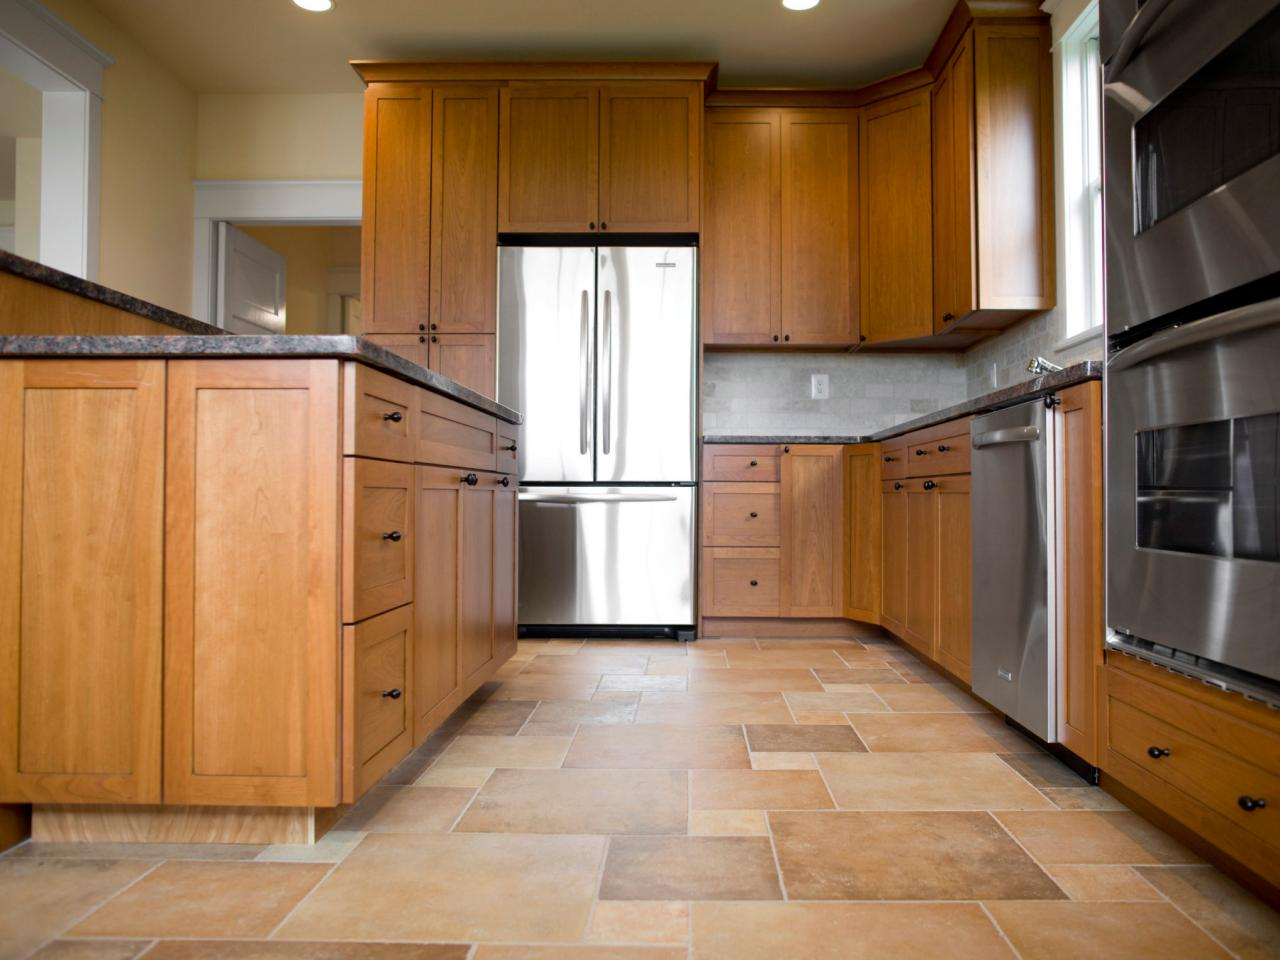 Best Kitchen Flooring choose the best flooring for your kitchen | hgtv